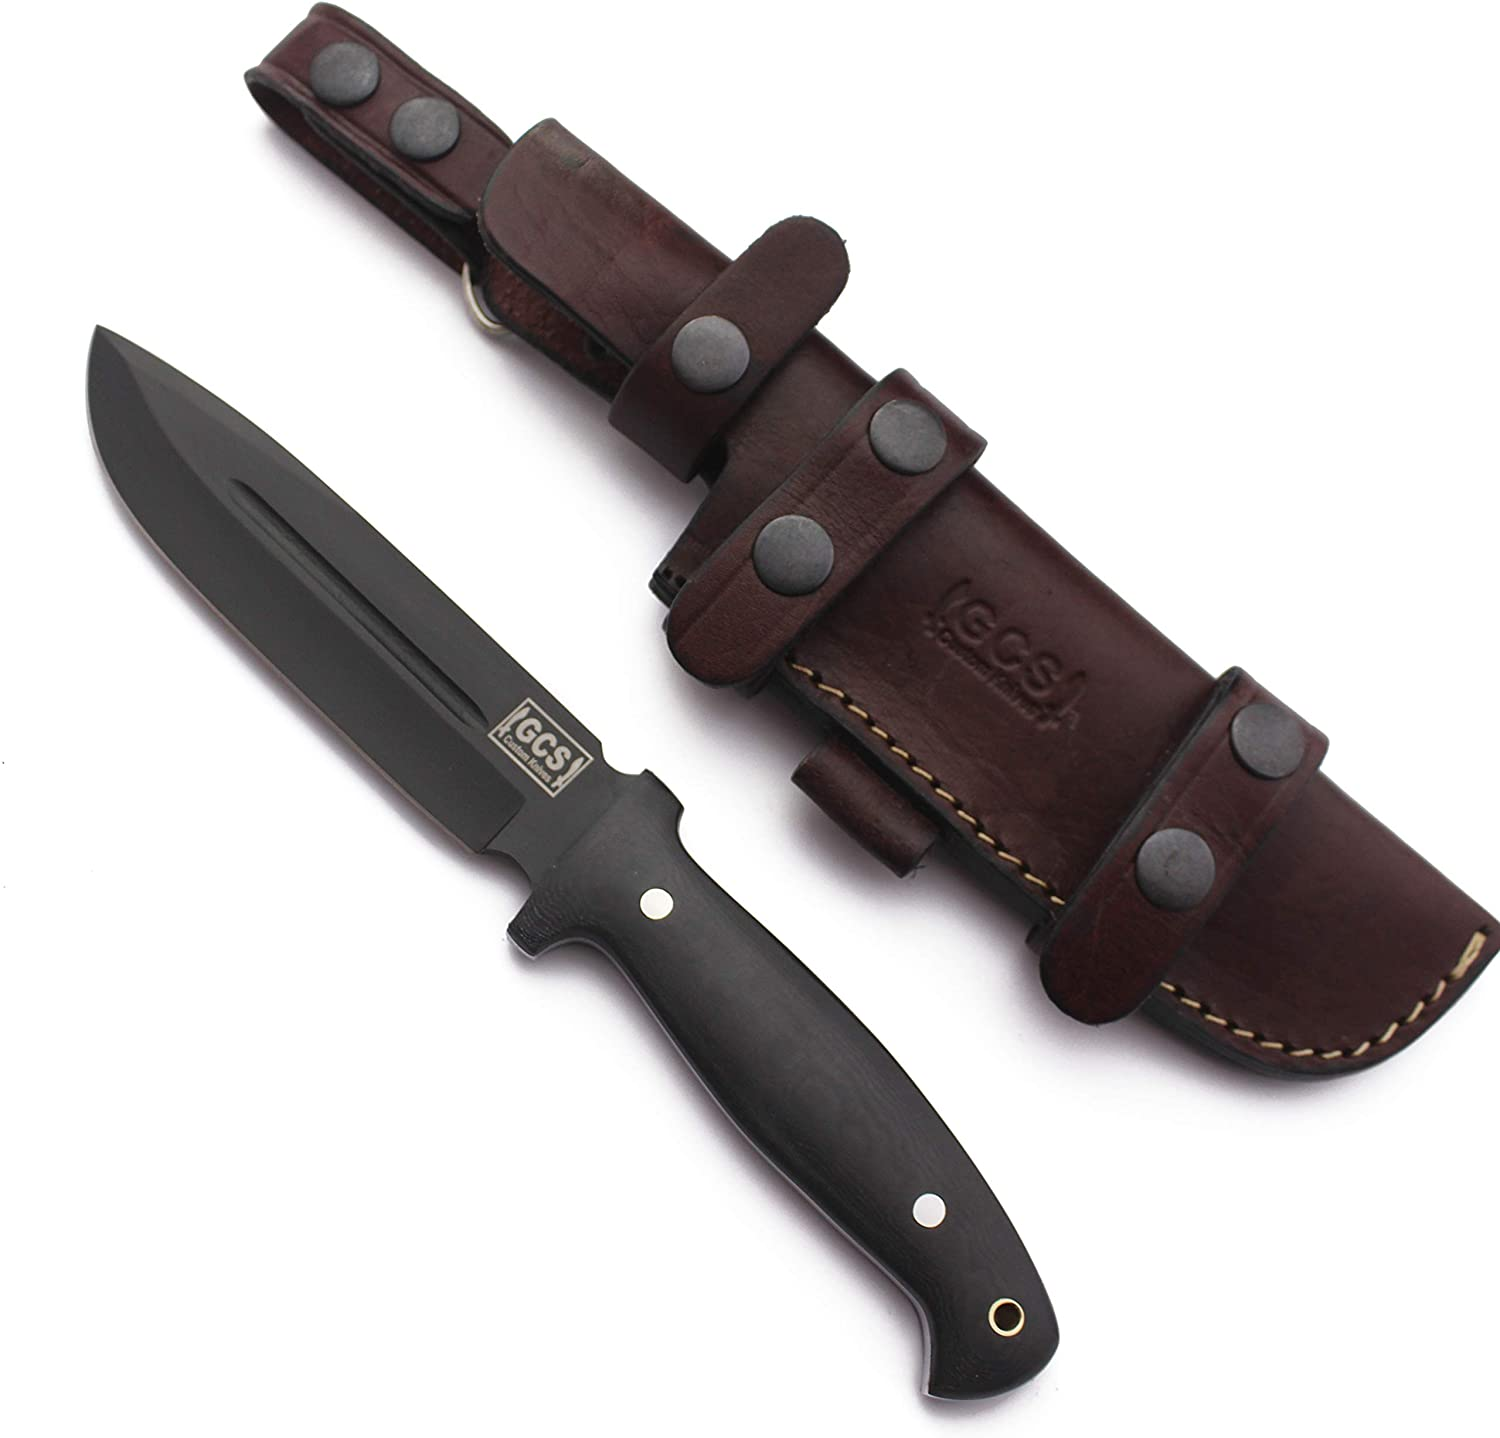 GCS Handmade D2 Tool Steel Survival Tactical Hunting Camping Fixed Blade Knife Black Micarta Handle with Brown Leather Right or Left Hand Horizontal Fixed Blade Knife Sheath GCS244